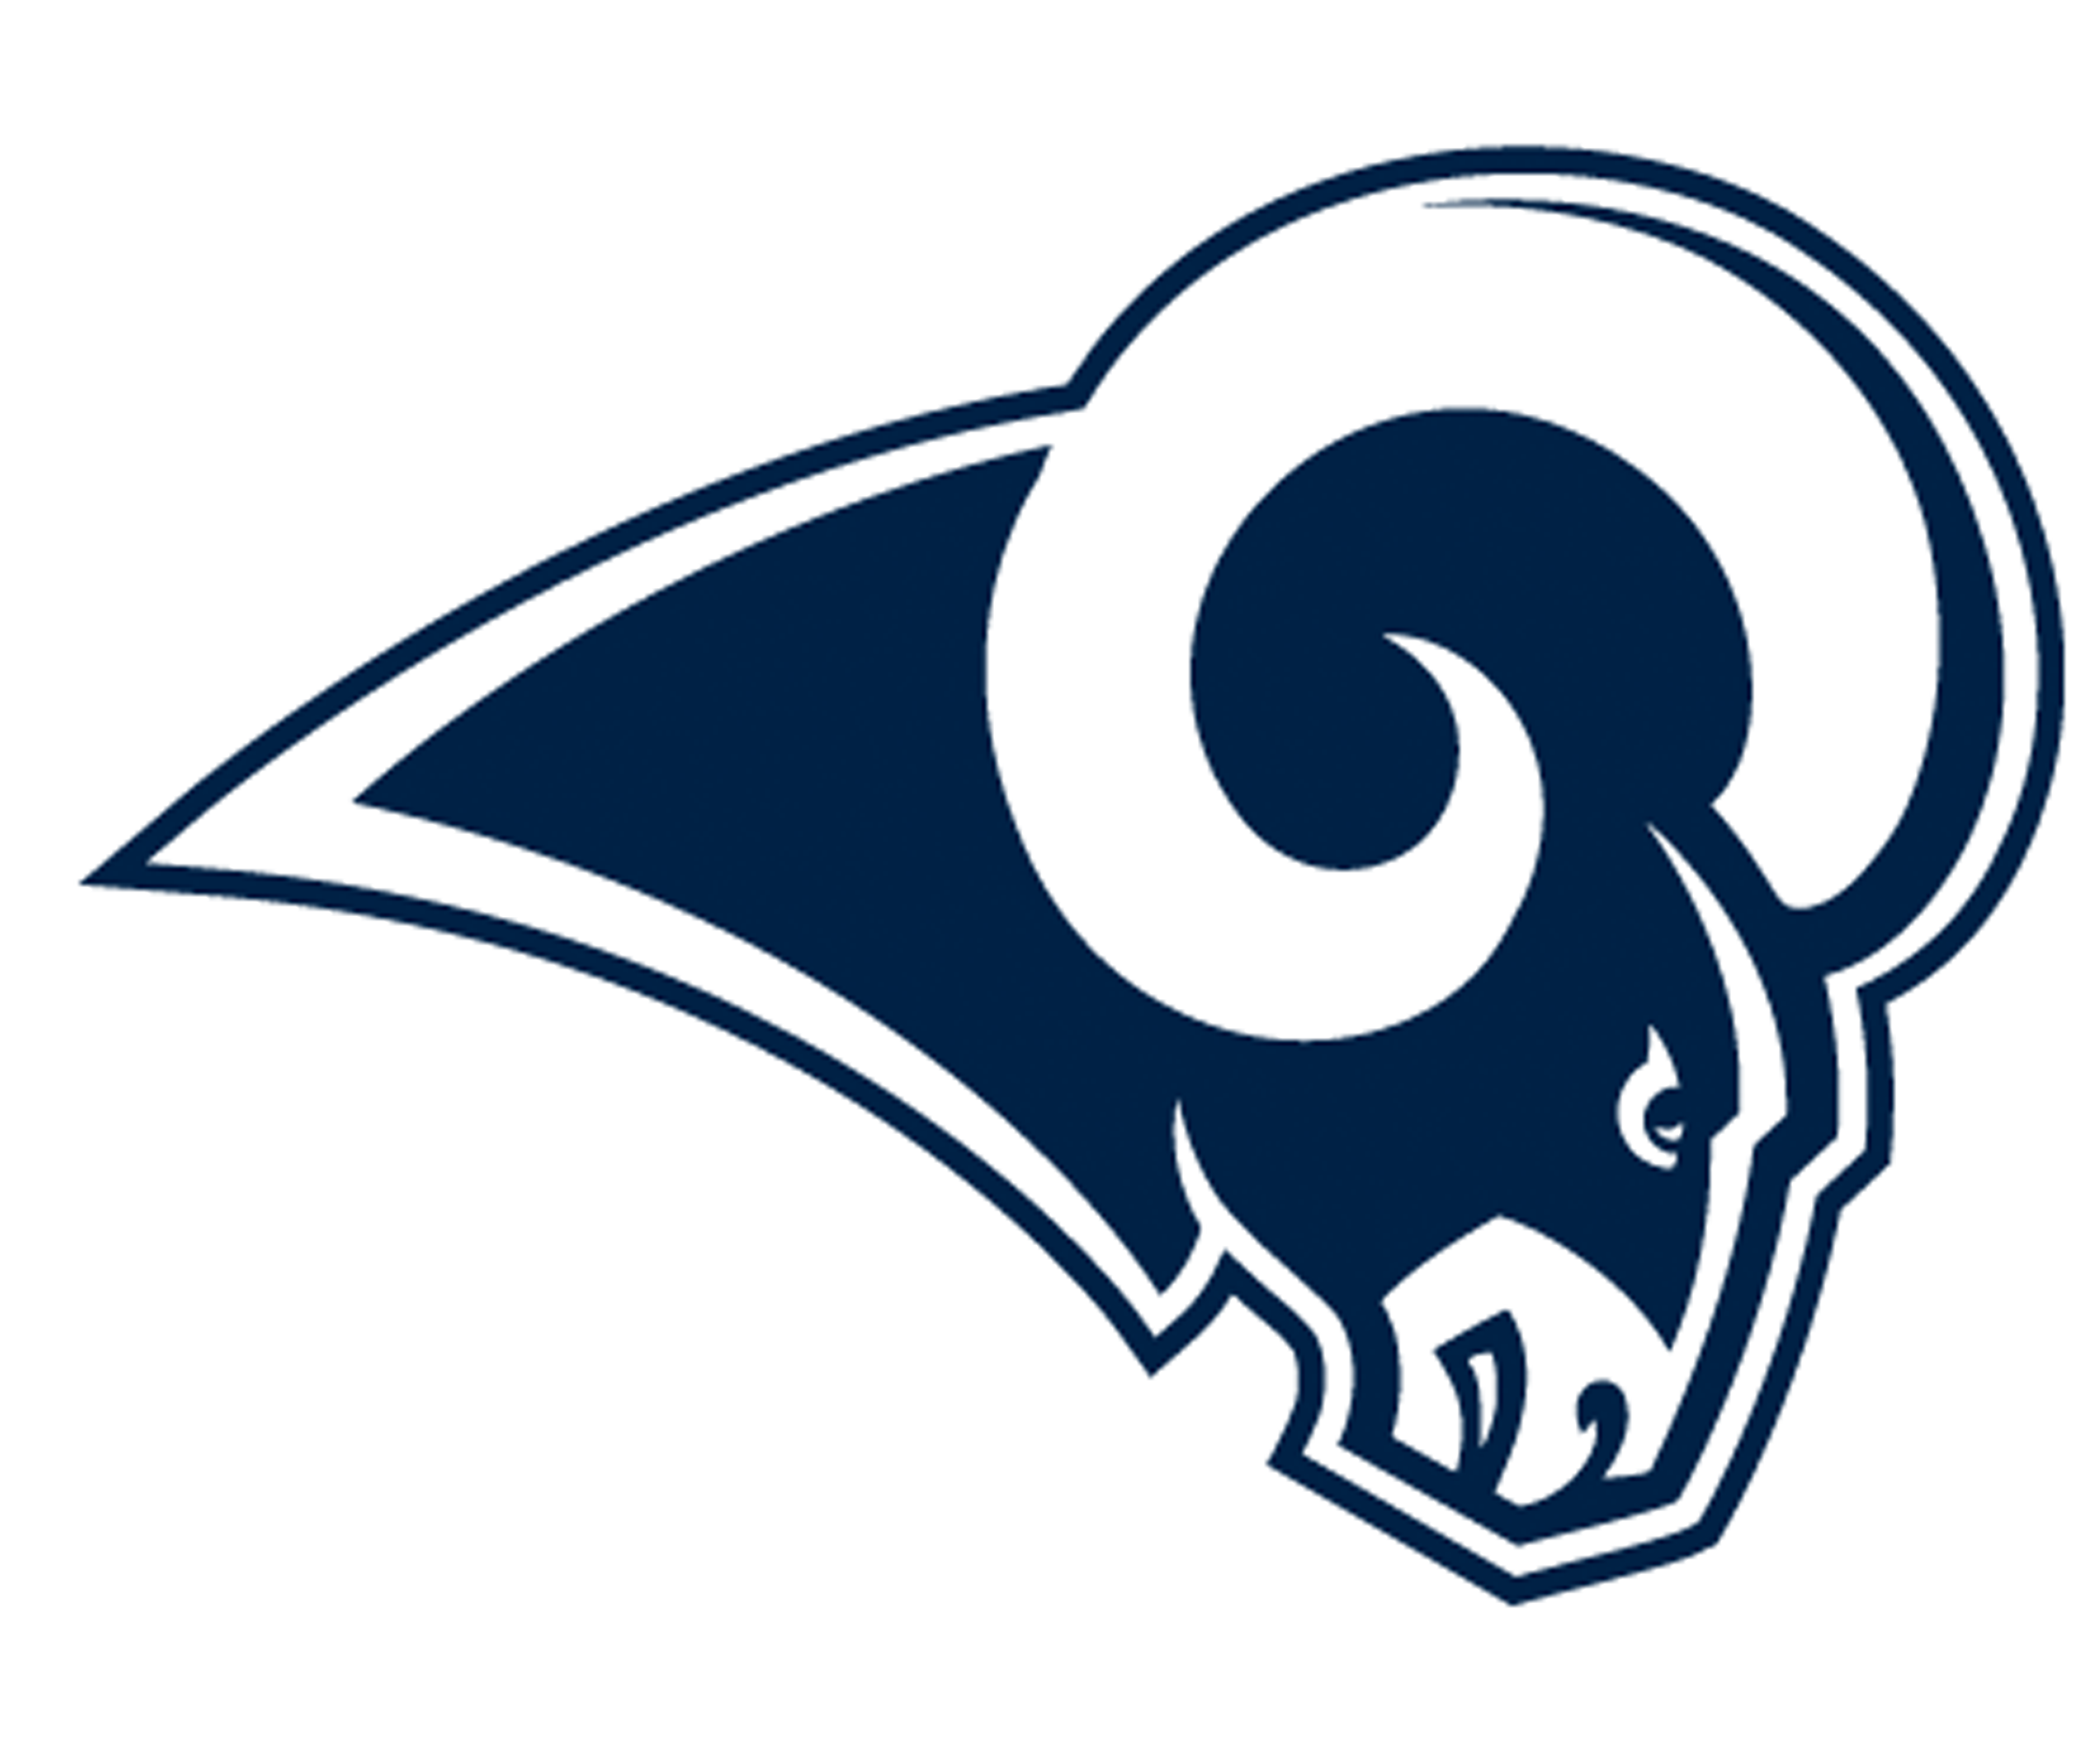 Los Angeles Rams - i7.75% Growth Rate - fACEBOOK(vs 0.95% growth via league Average)